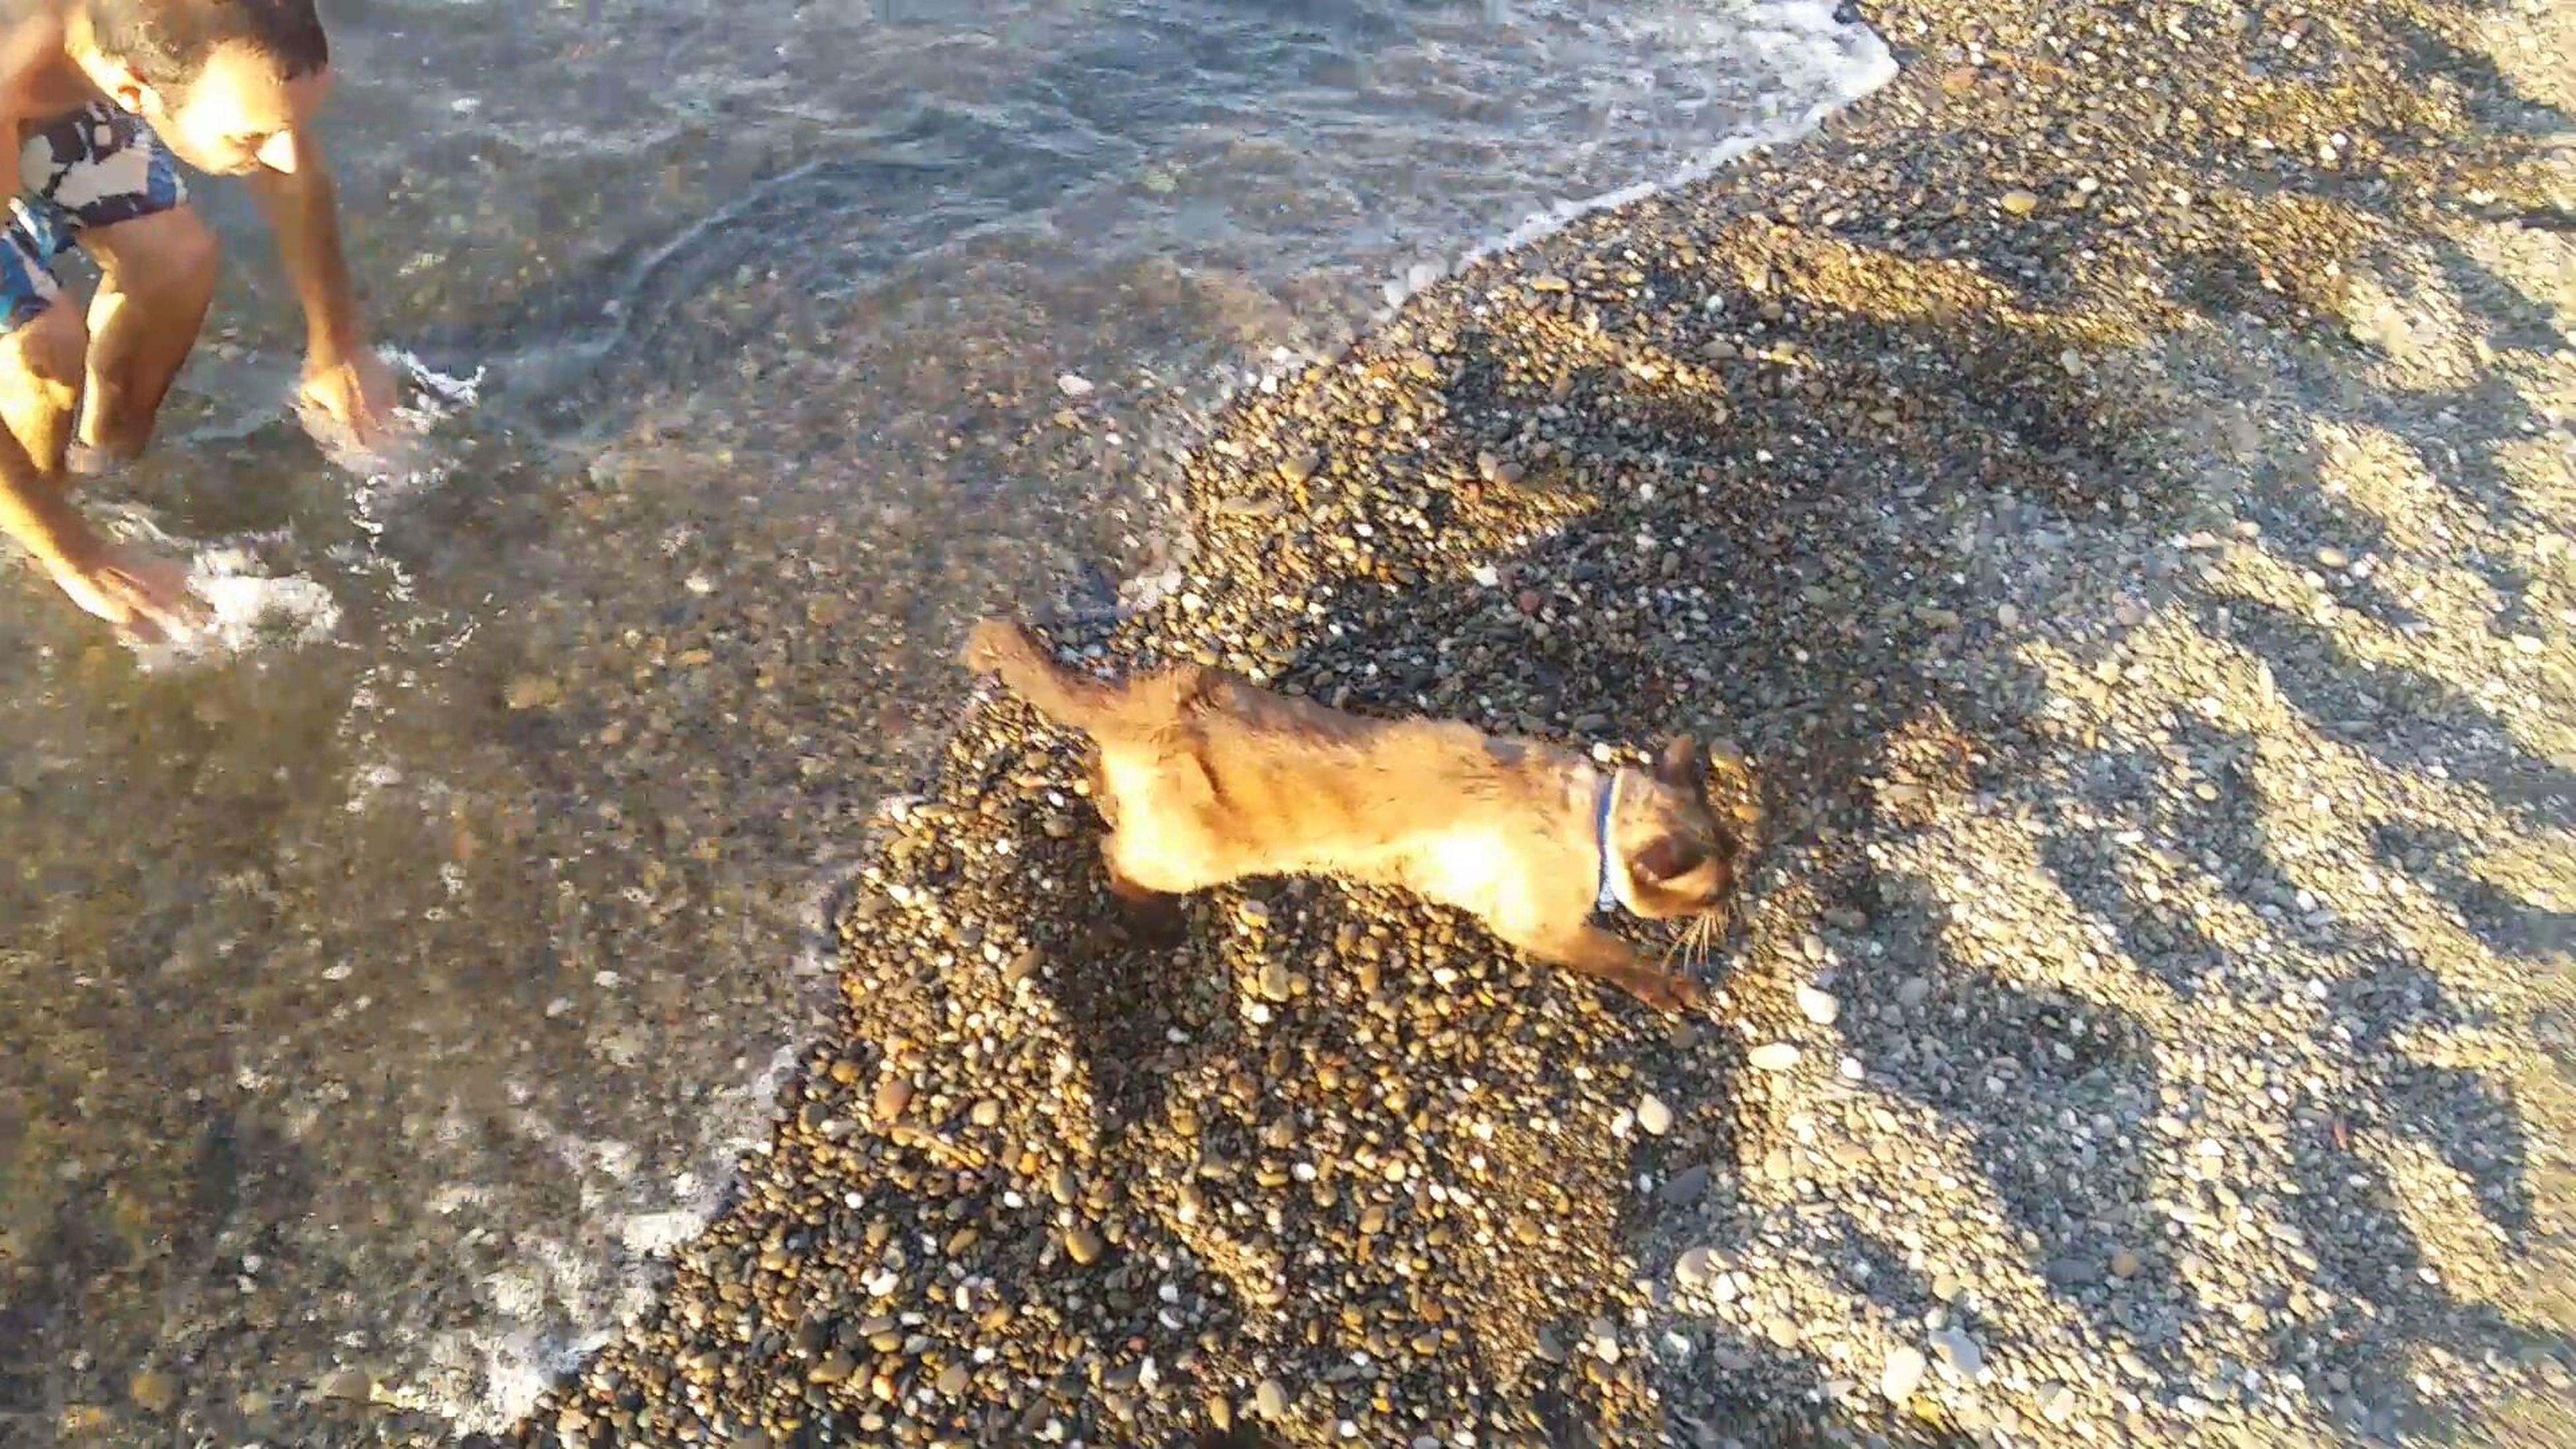 water, animal themes, one animal, high angle view, swimming, animals in the wild, sea, beach, sunlight, mammal, wildlife, dog, pets, nature, shore, domestic animals, sand, outdoors, rippled